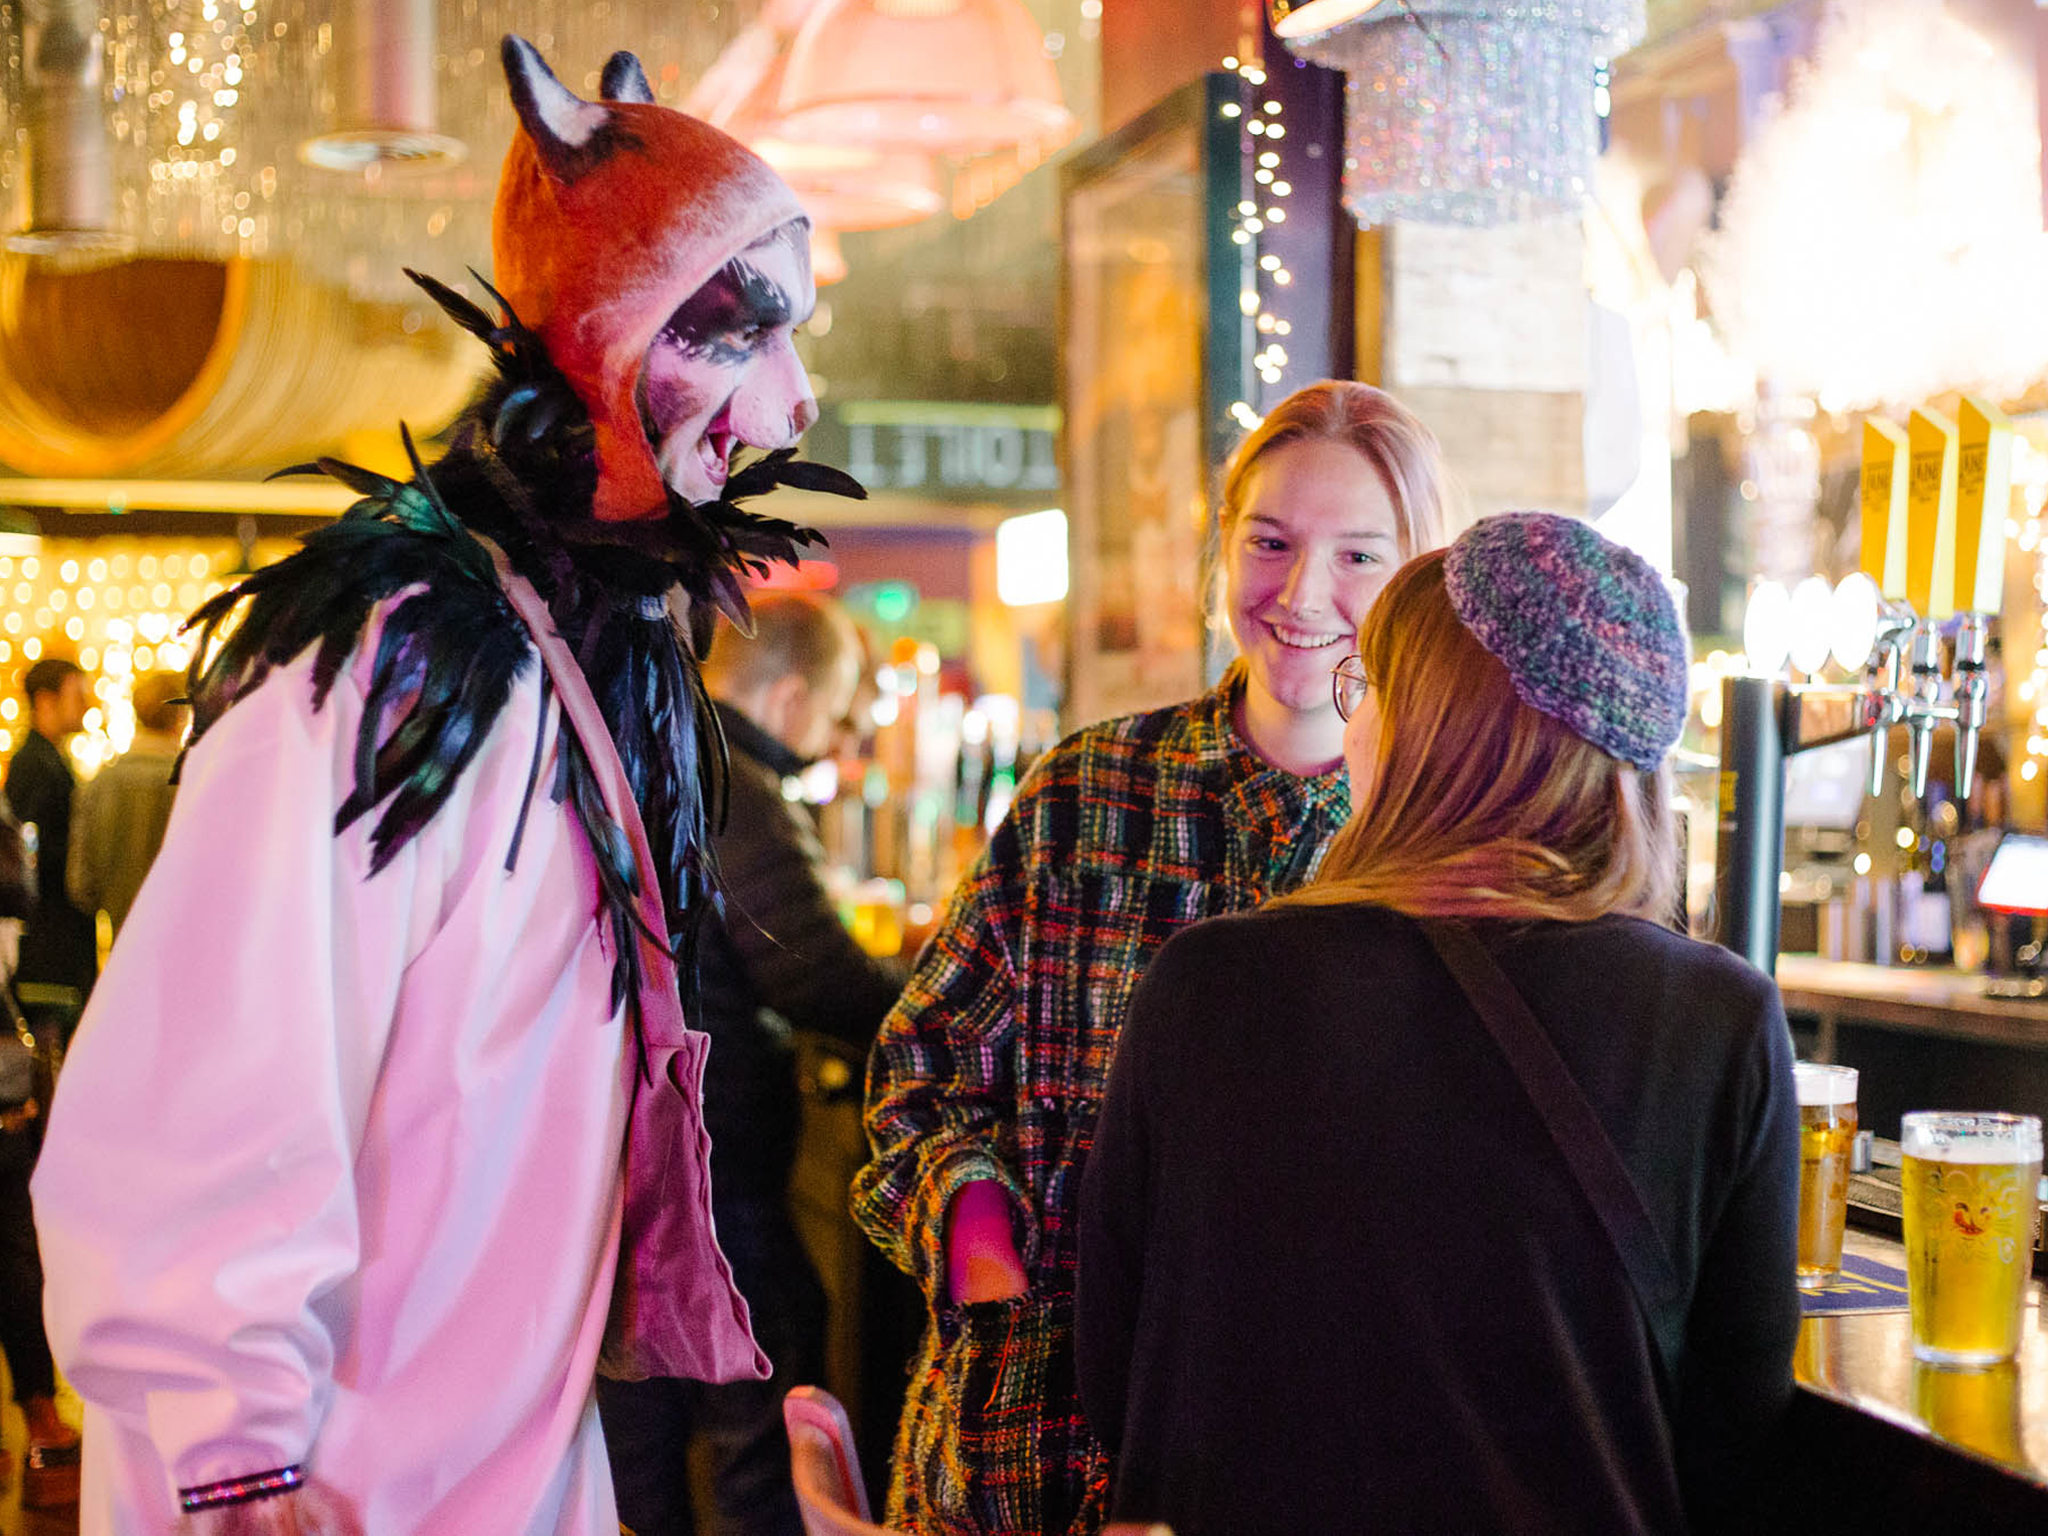 This winter pop-up in a London pub might just give you nightmares